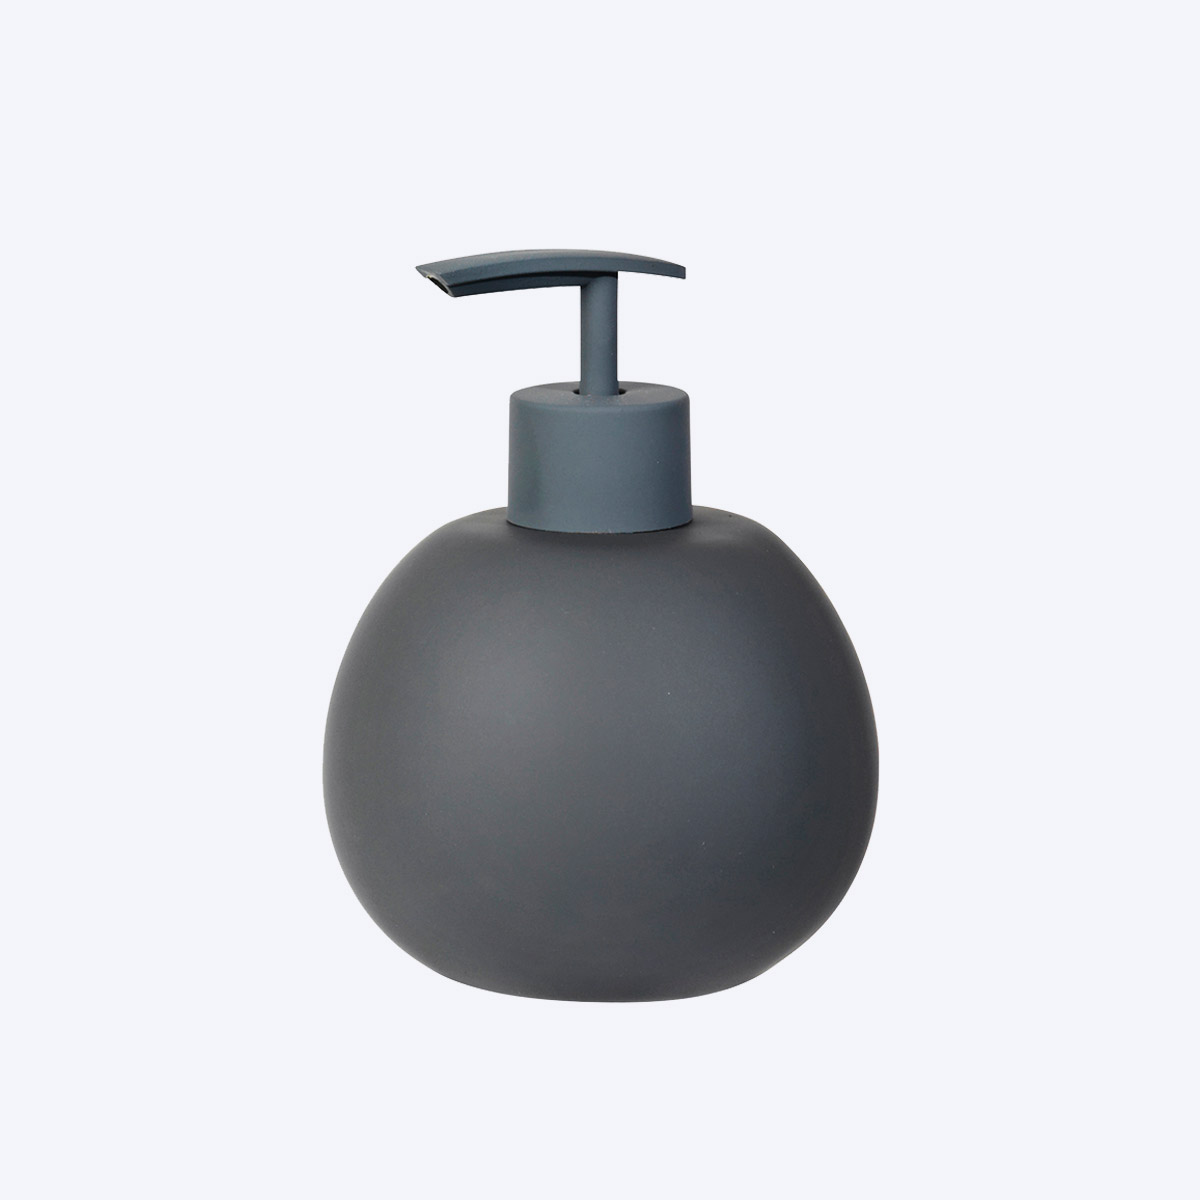 grey ceramic soap dispenser